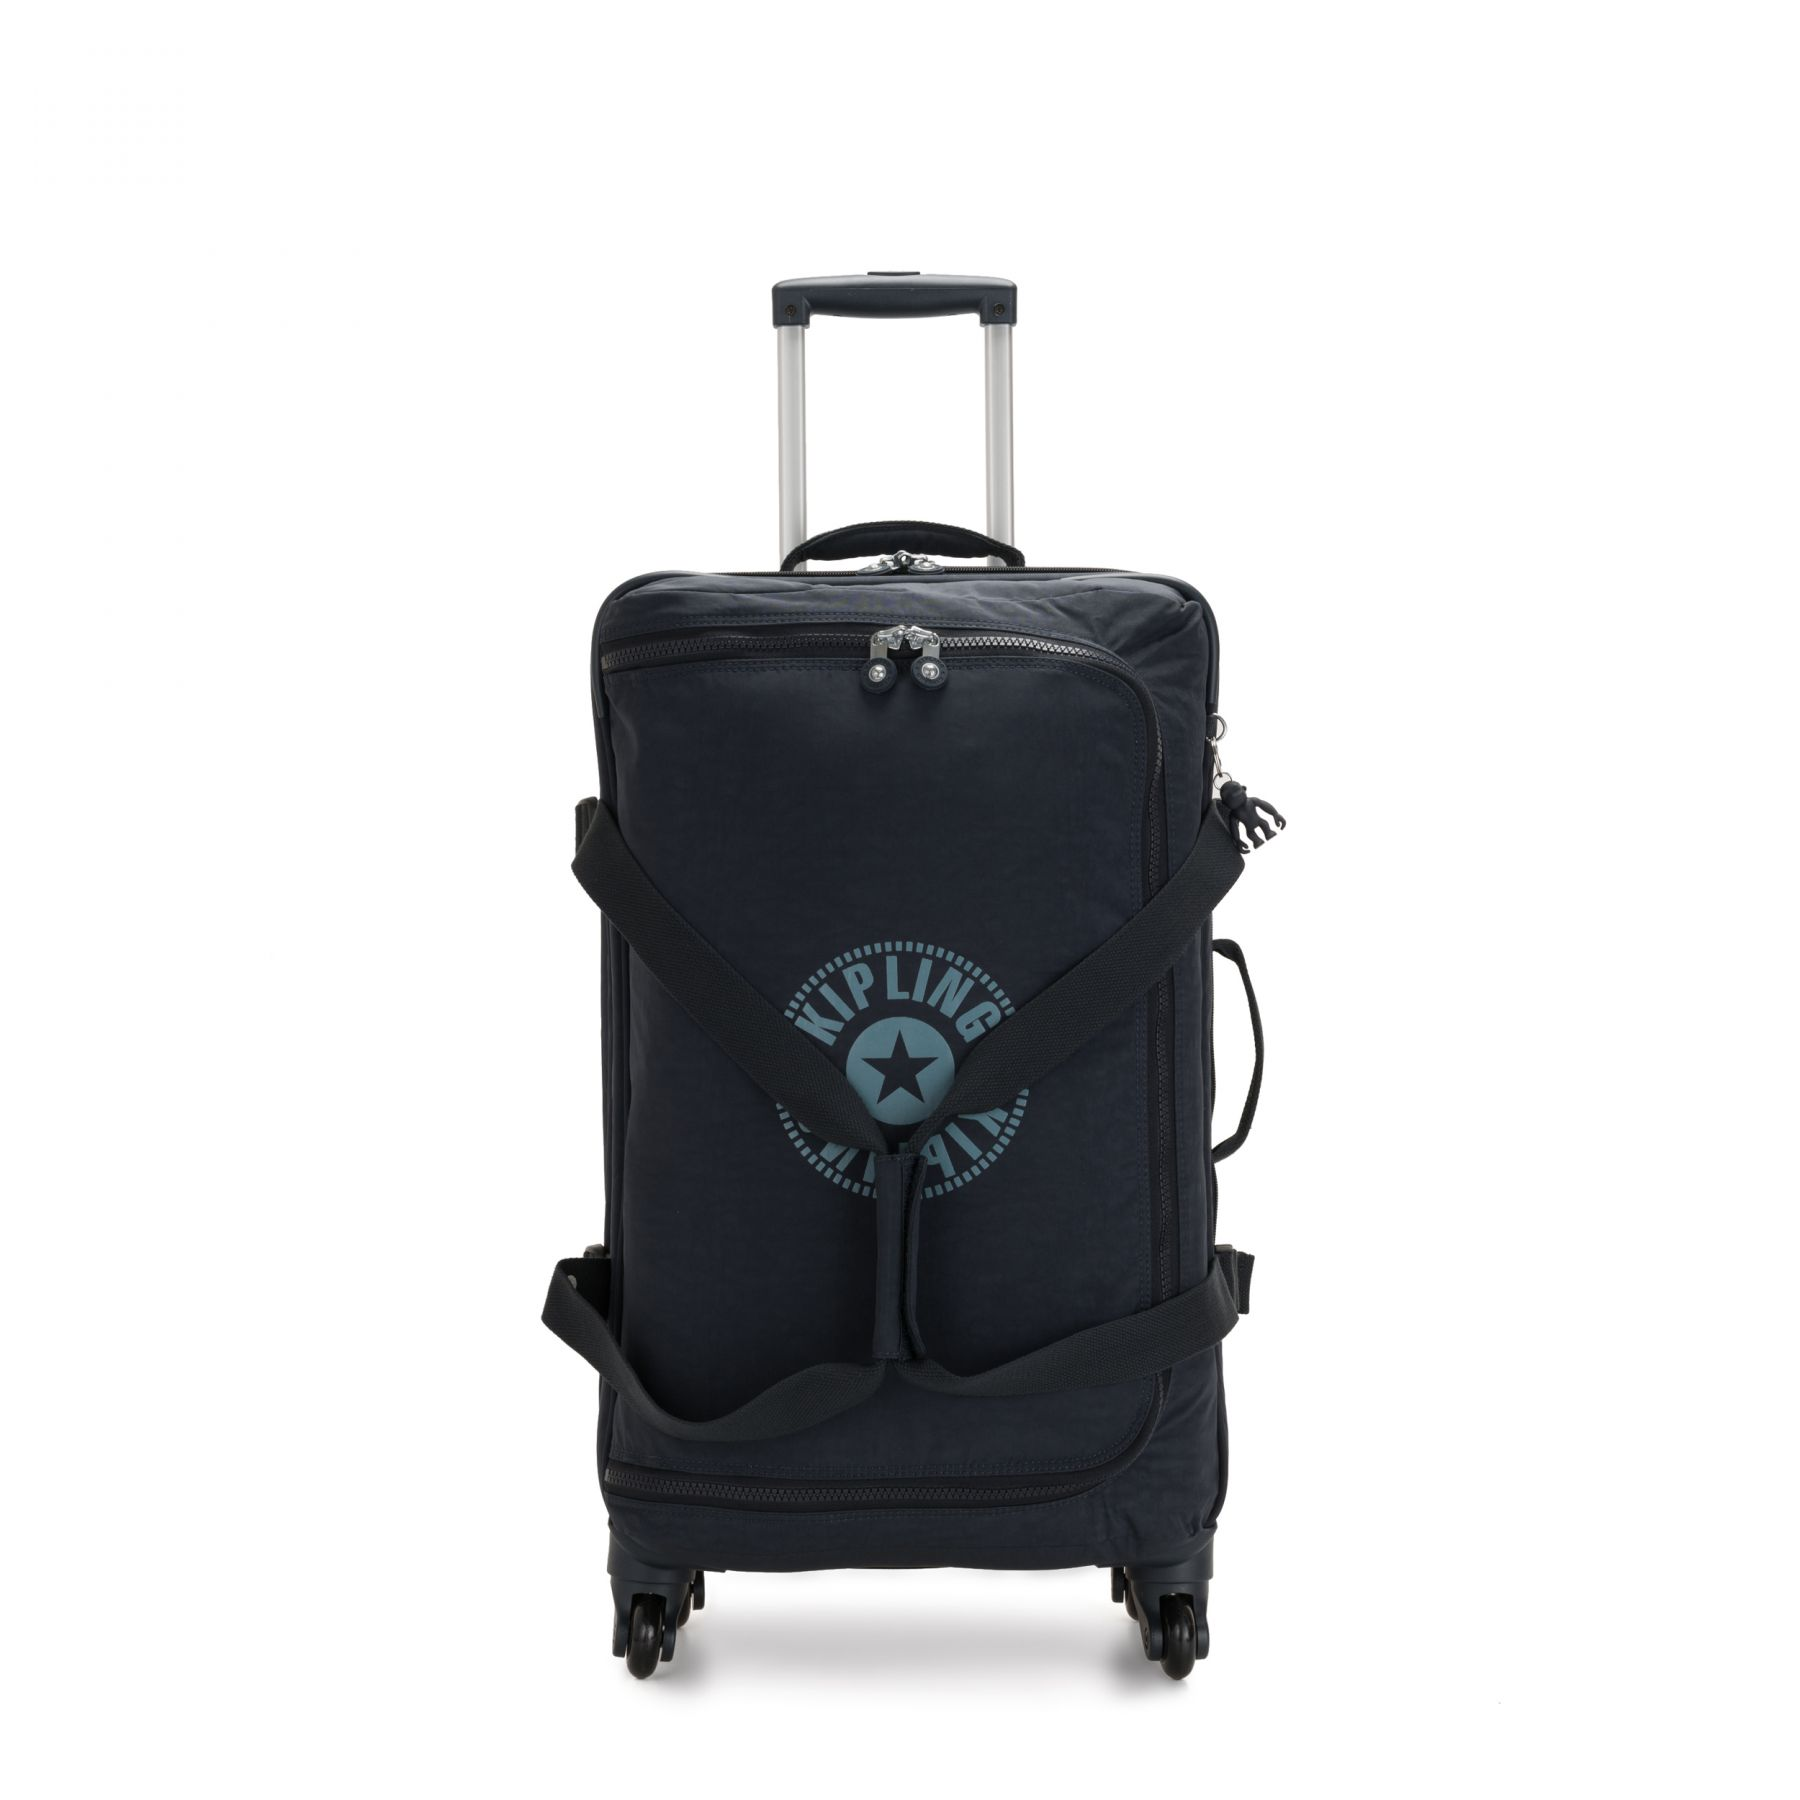 CYRAH M LUGGAGE by Kipling - Front view